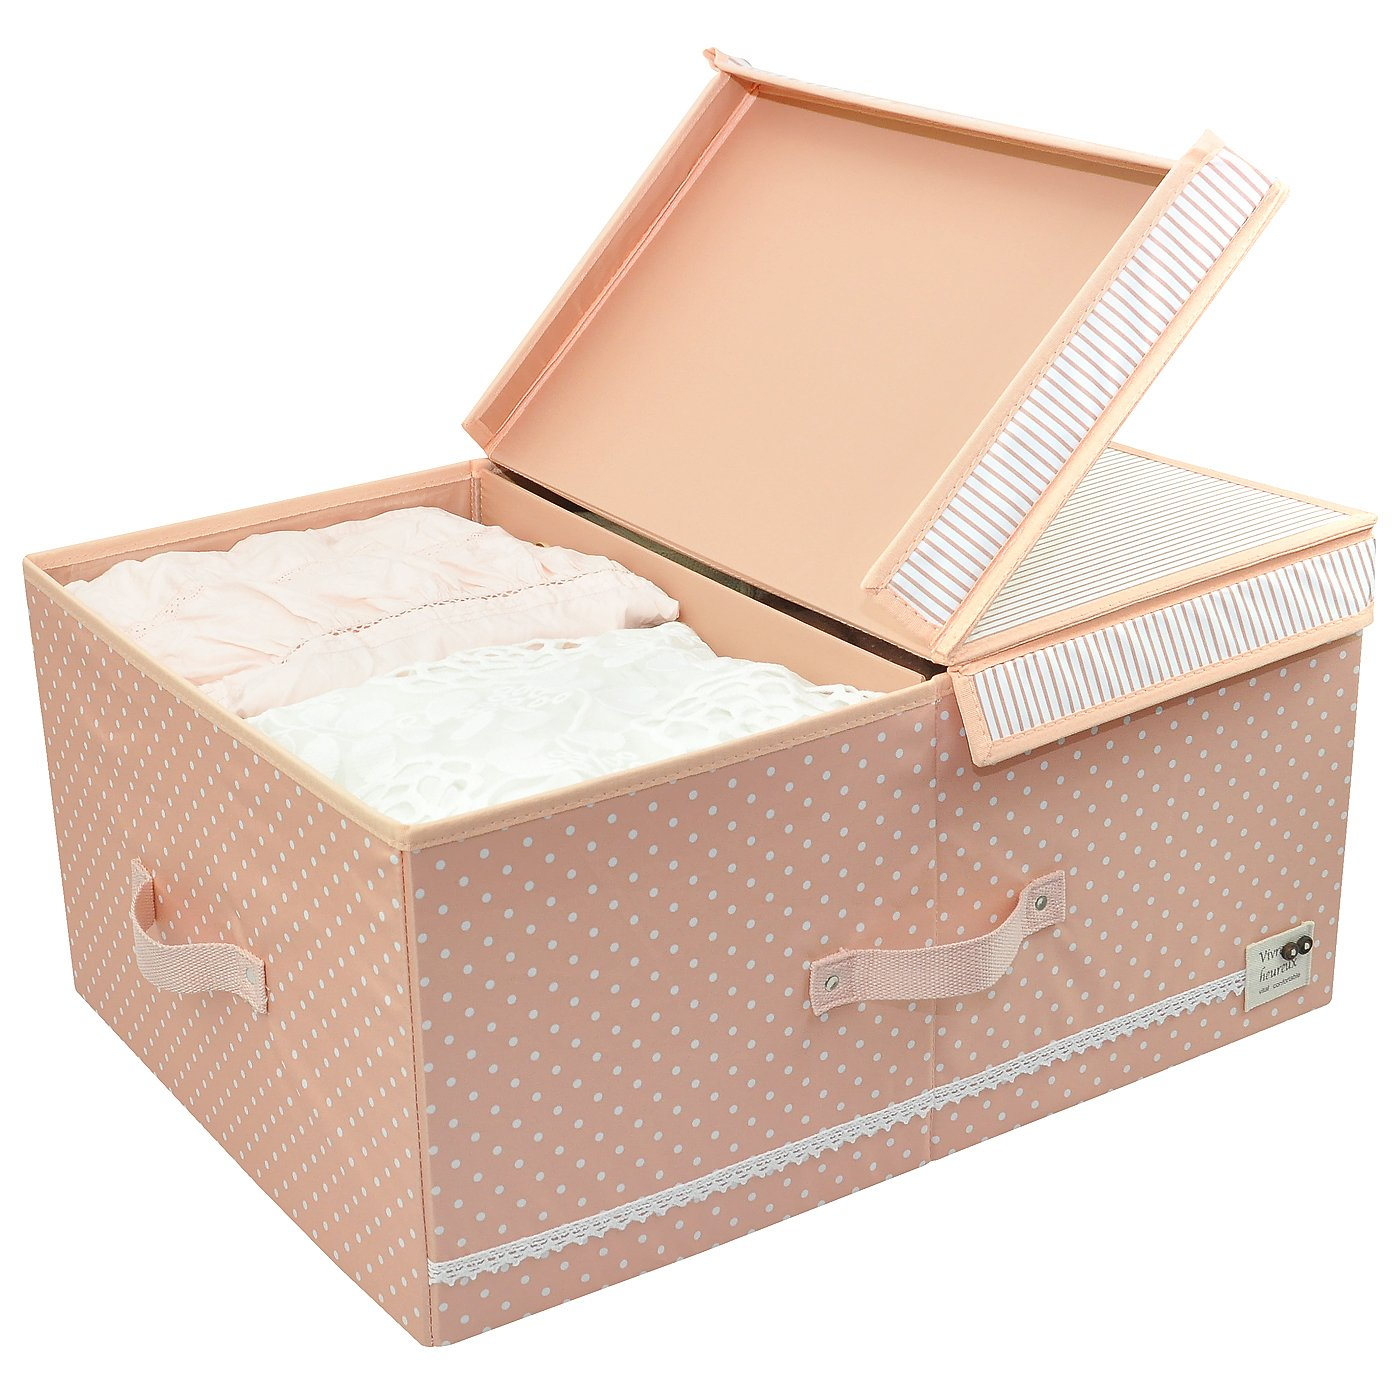 Cloth Organizer Storage Boxes with Lids and Removable Dividers, Folding Storage Bins and Cute Color for Girls, Peachy